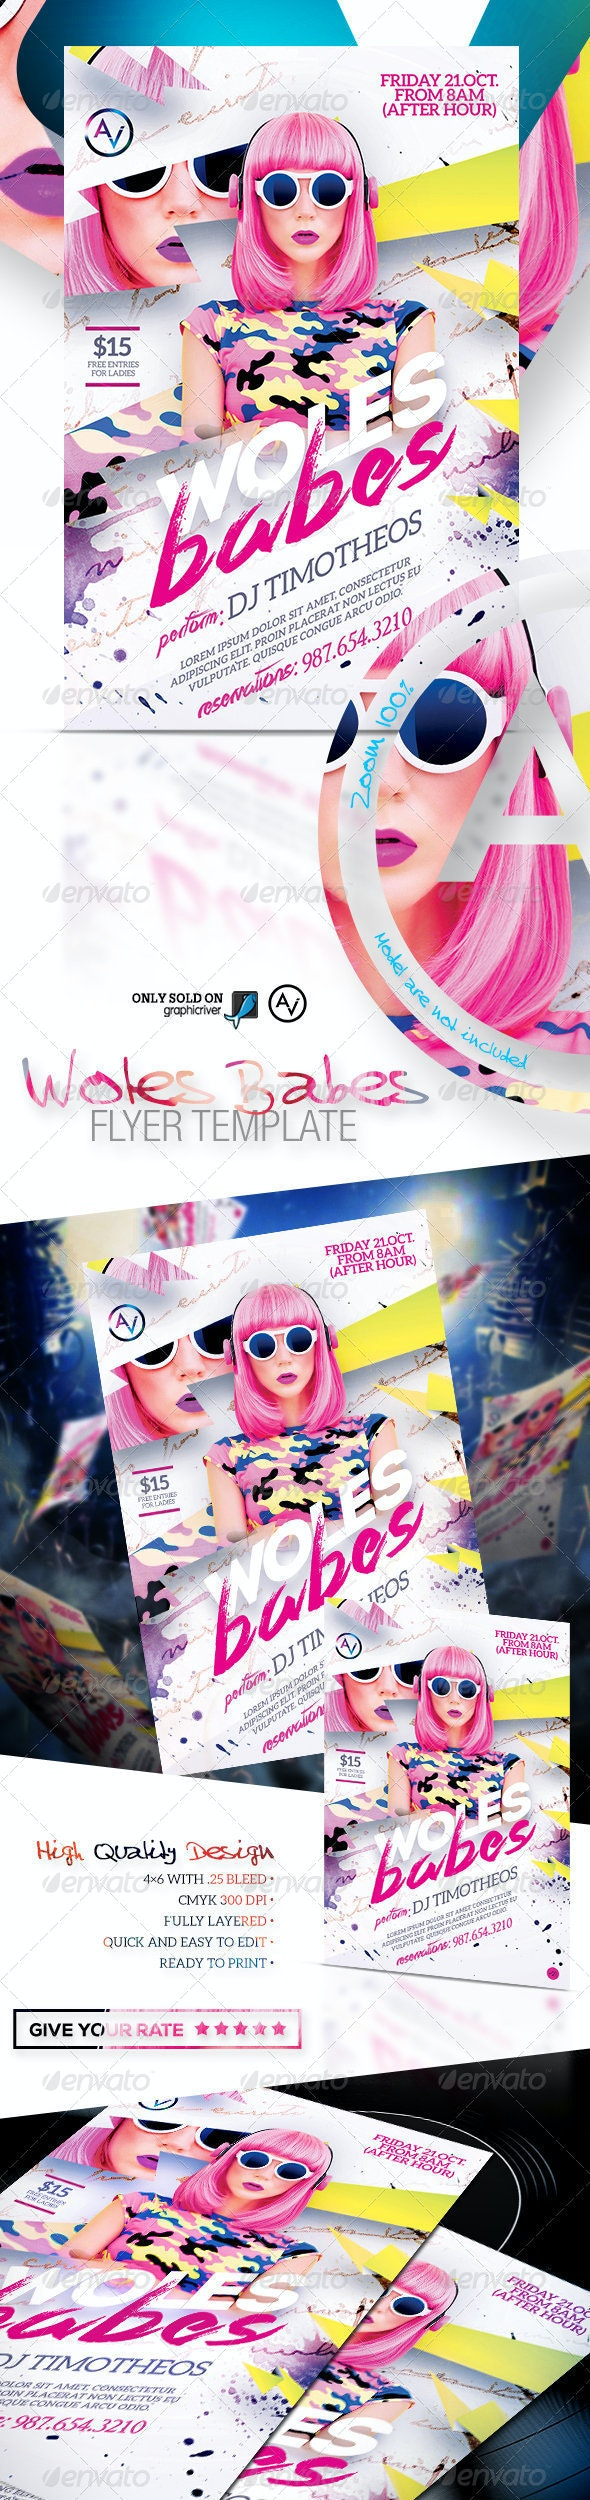 Woles Babes Flyer Template - Clubs & Parties Events